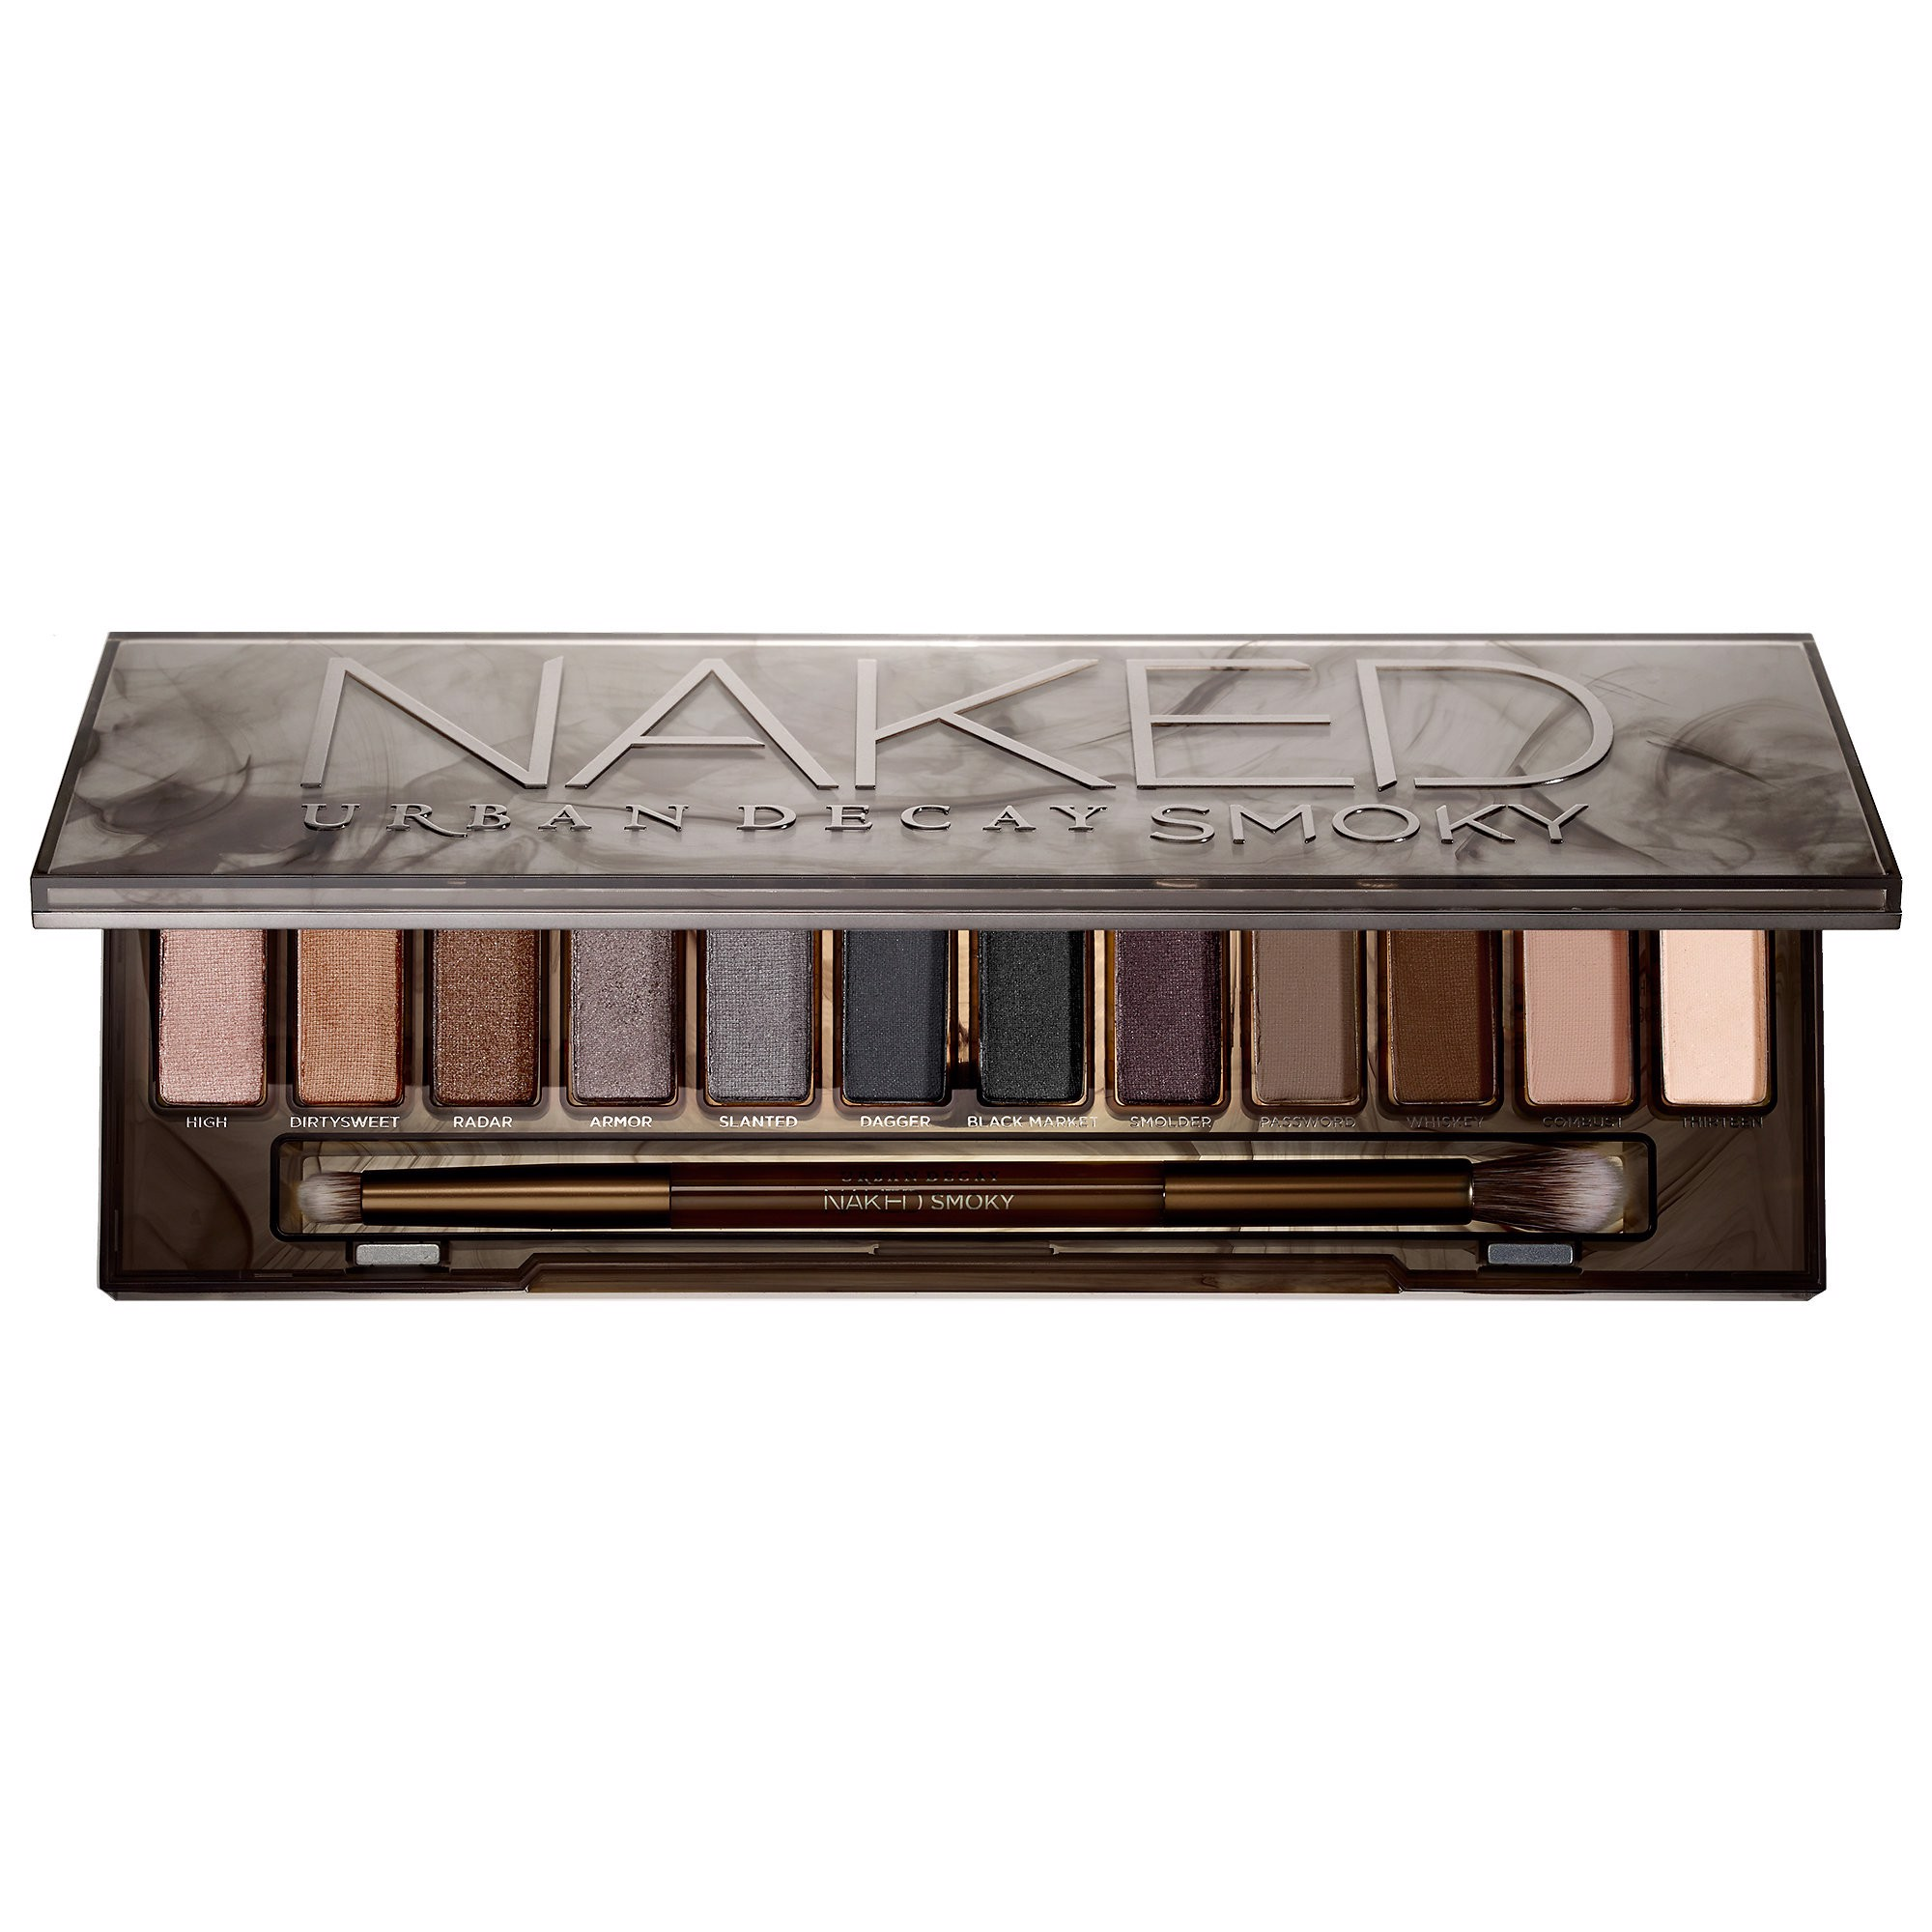 Phấn mắt Urban Decay Naked Smoky